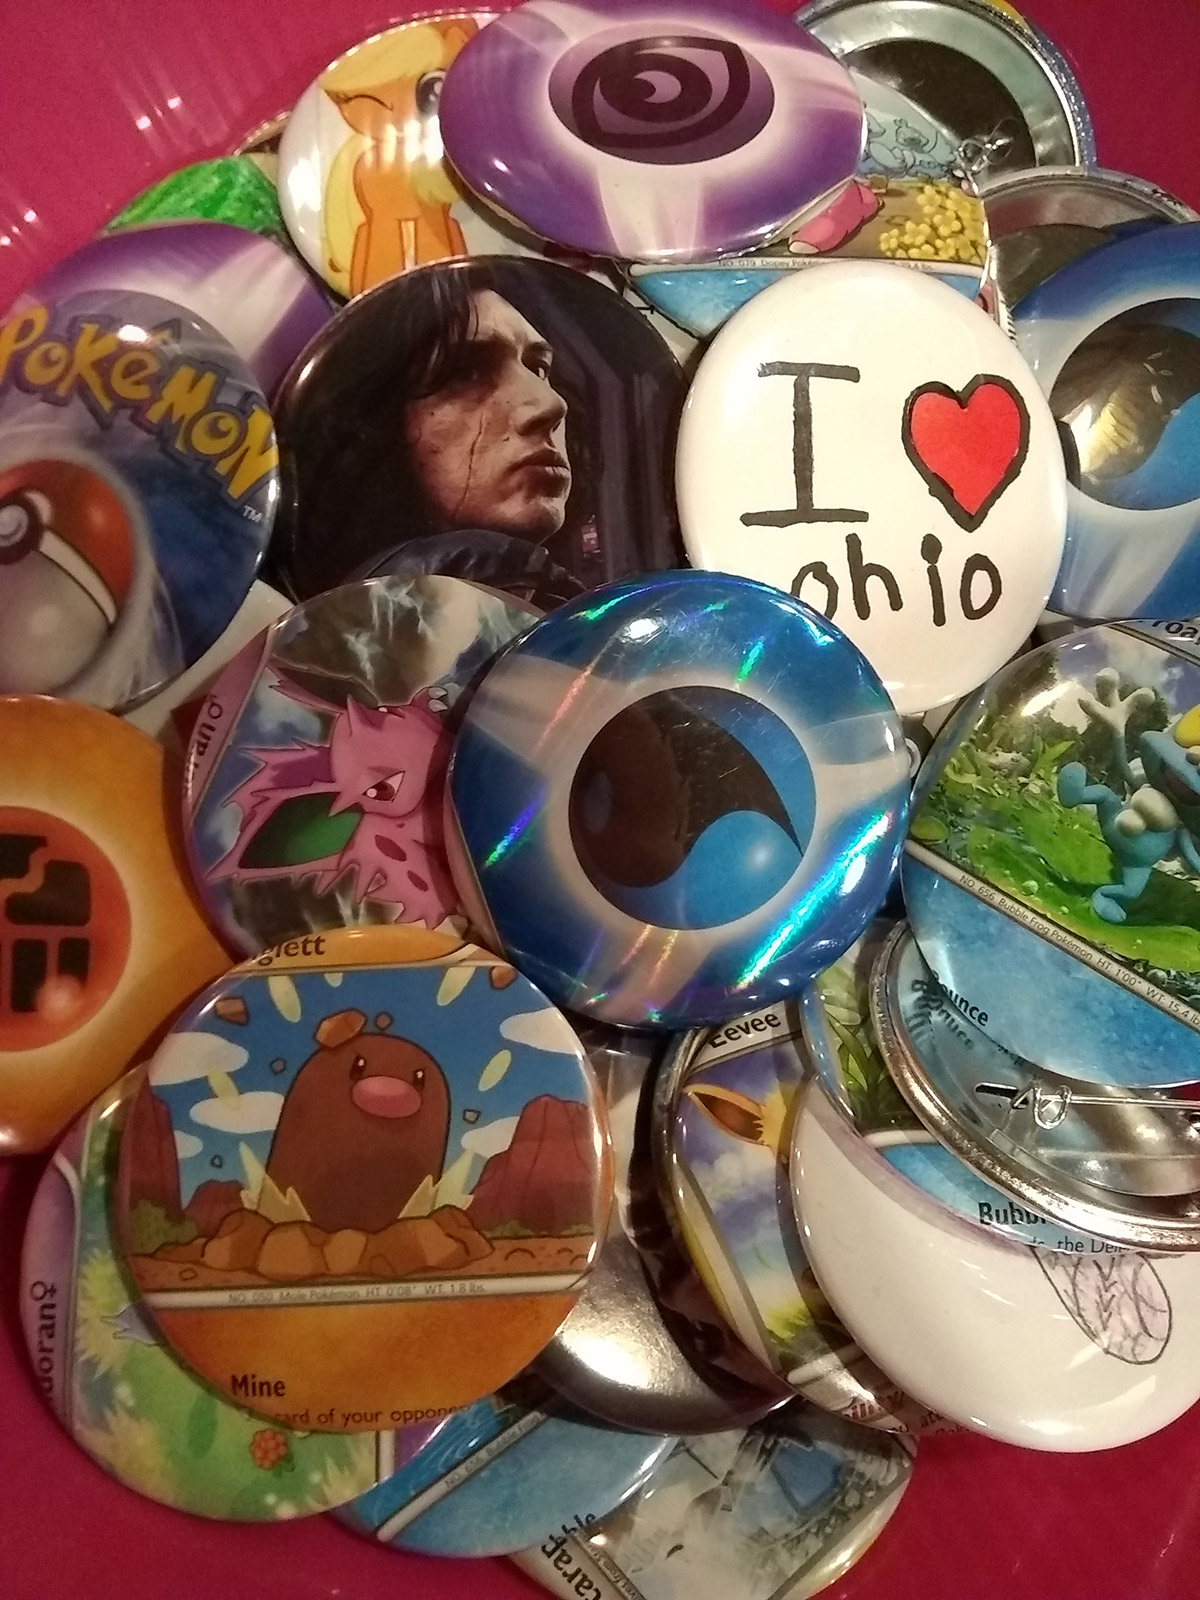 Custom Button Designs - Pokemon, Star Wars & More!